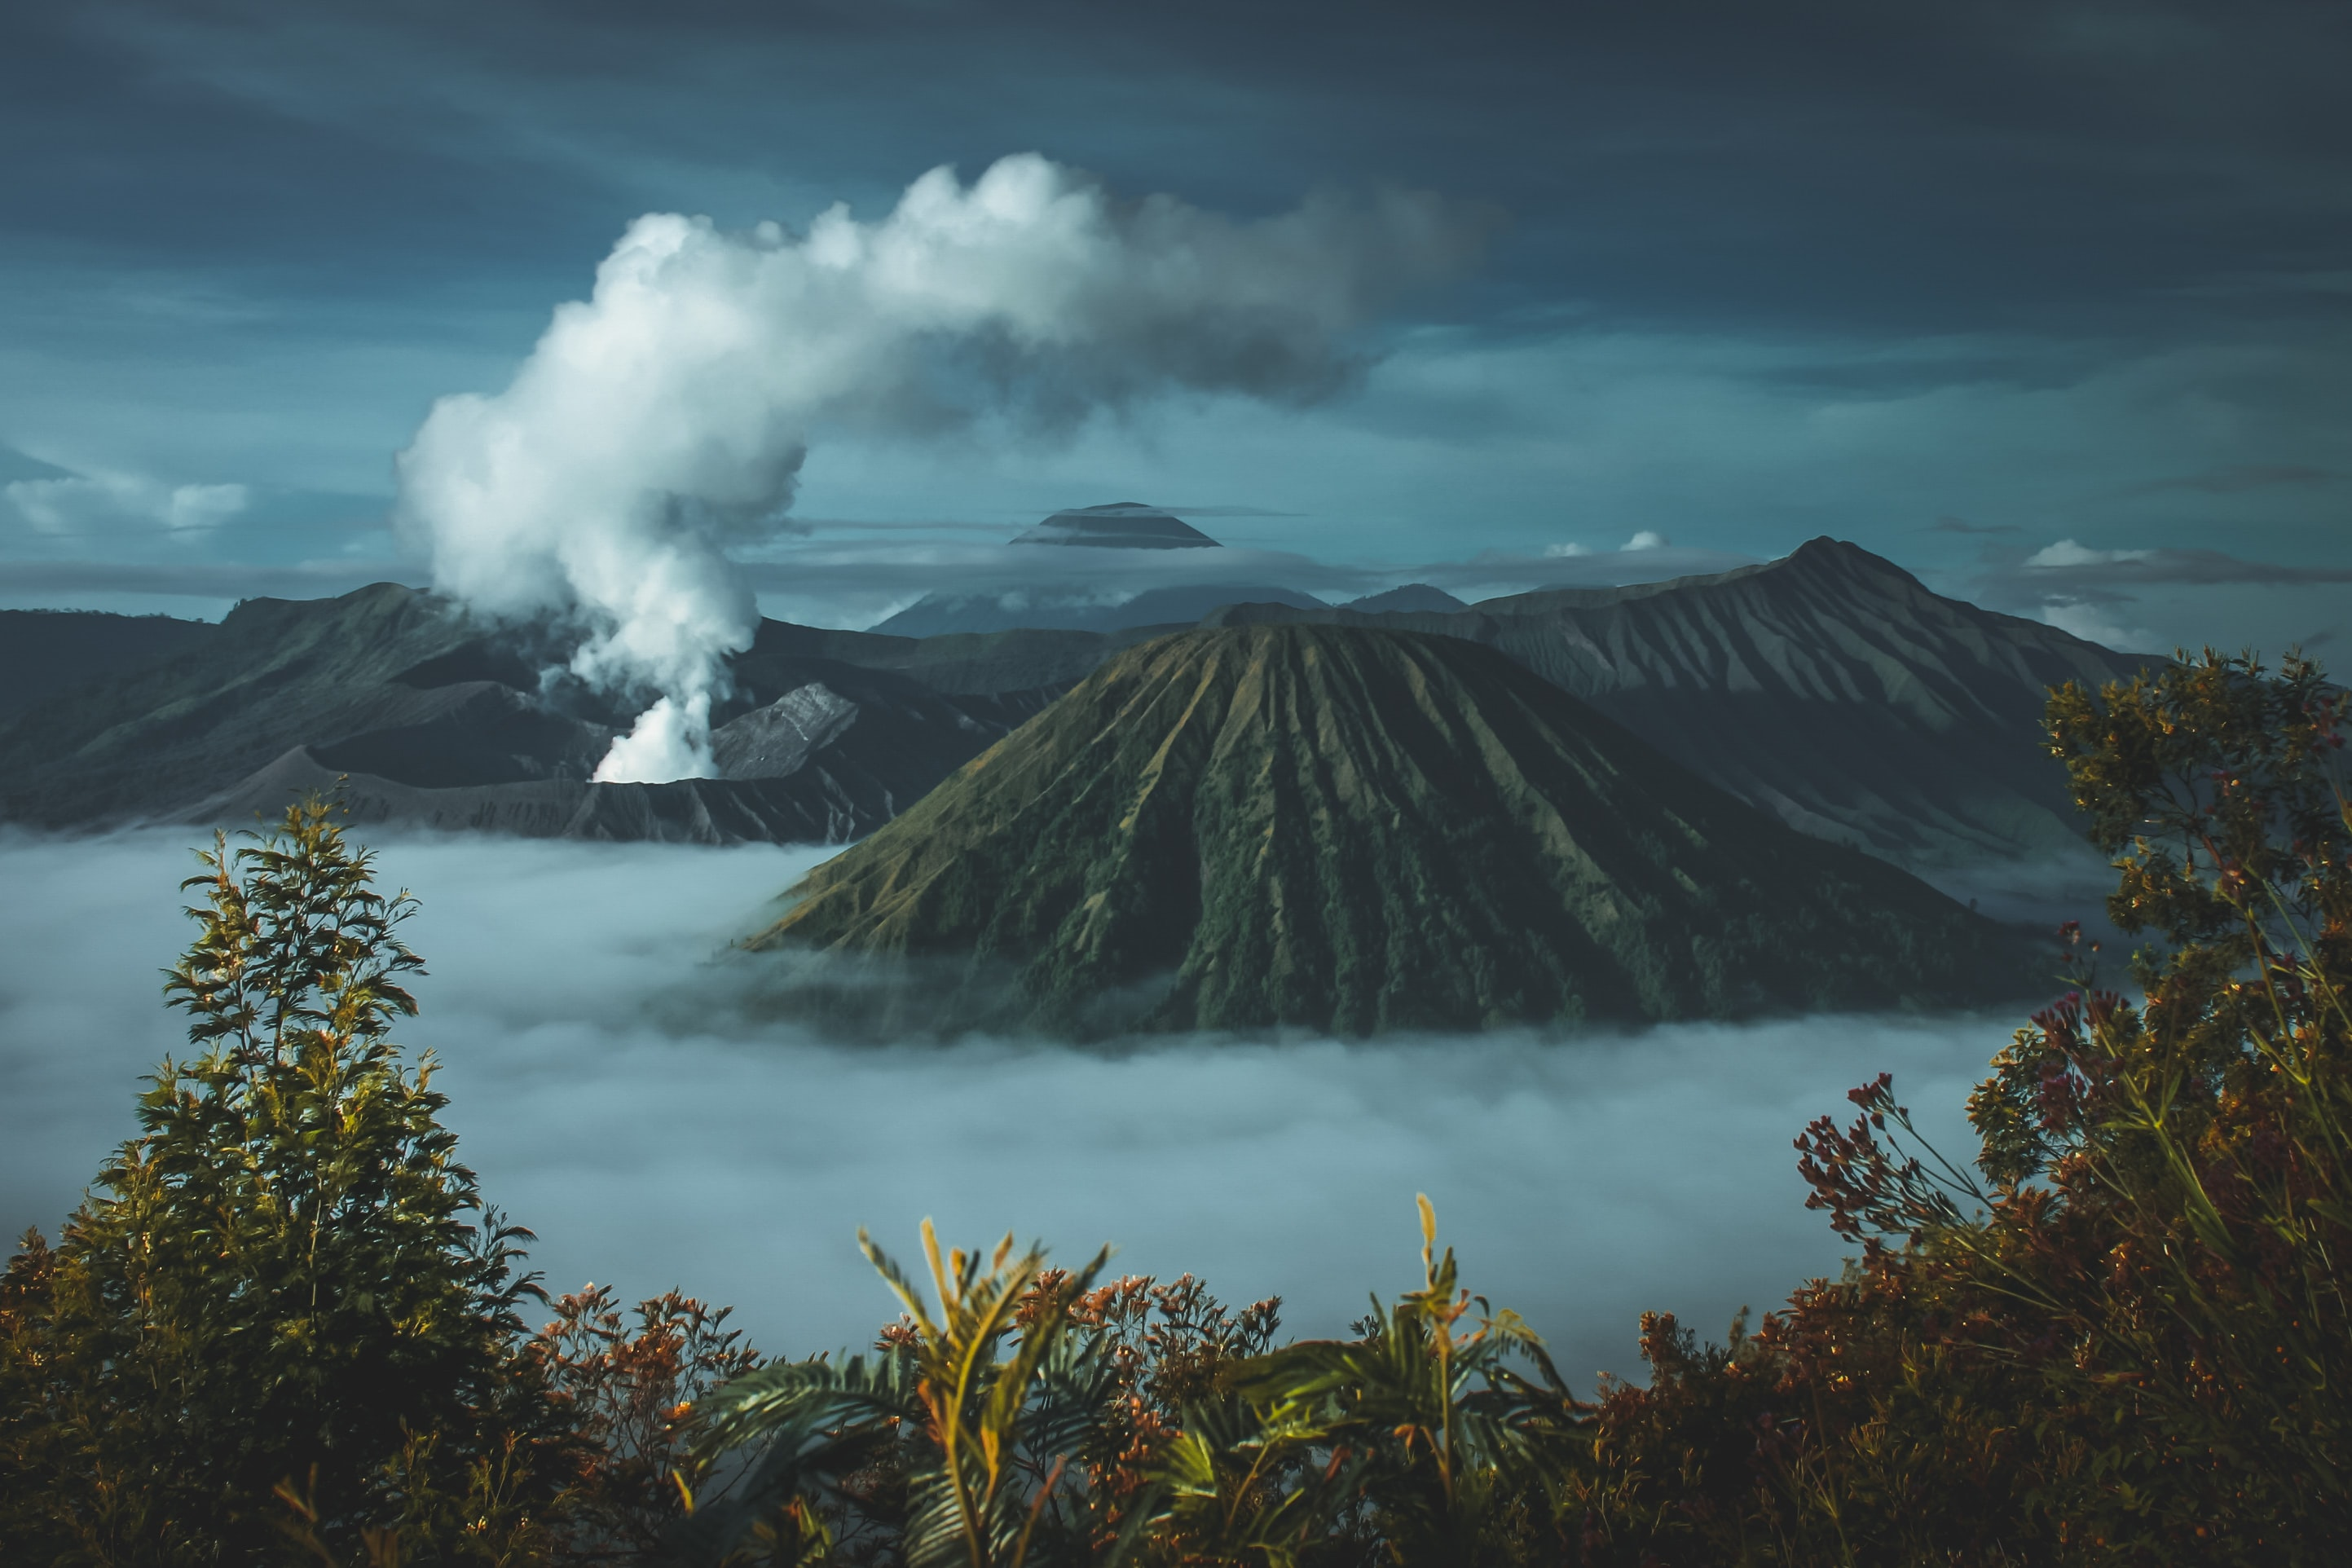 a volcano smoking in a tropical setting